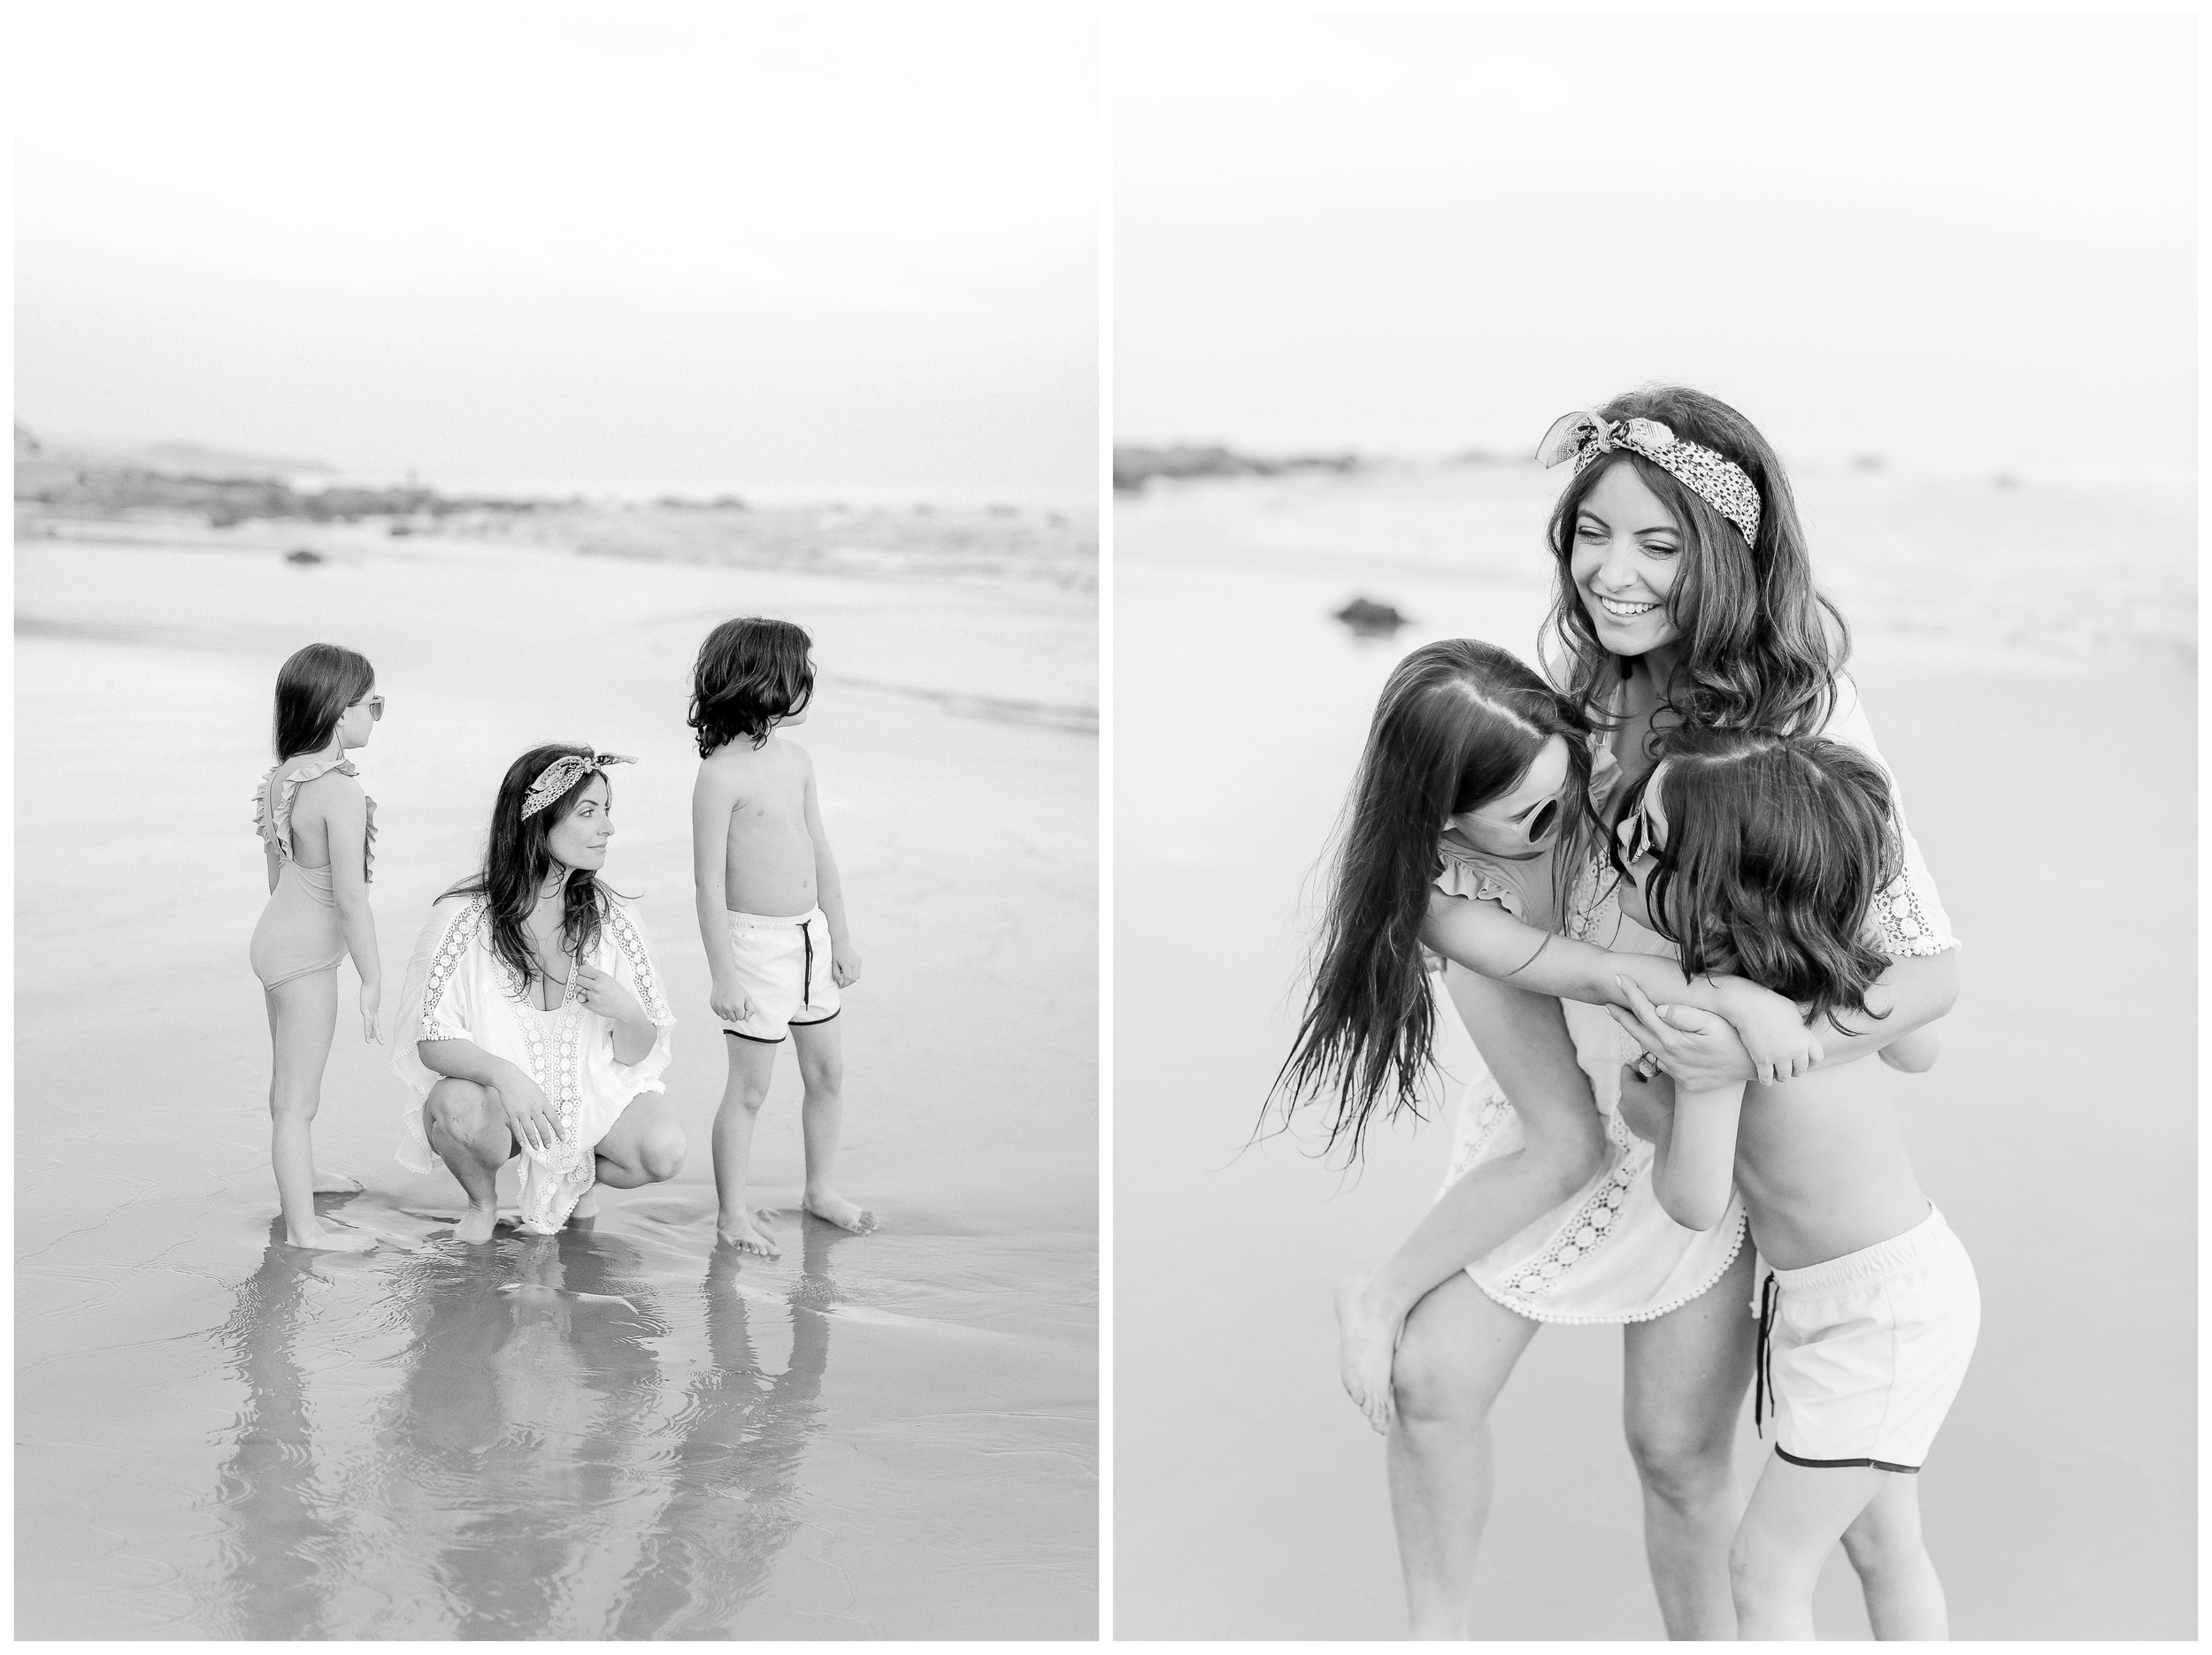 Crystal-Cove-State-Beach-Motherhood- Session-Crystal-Cove-Newport-Beach-Family-Photographer-Crystal-Cove-Minnow-Swim-Cori-Kleckner-Photography-Orange-County-Vacation-Family-Photos-Session-_0855.jpg